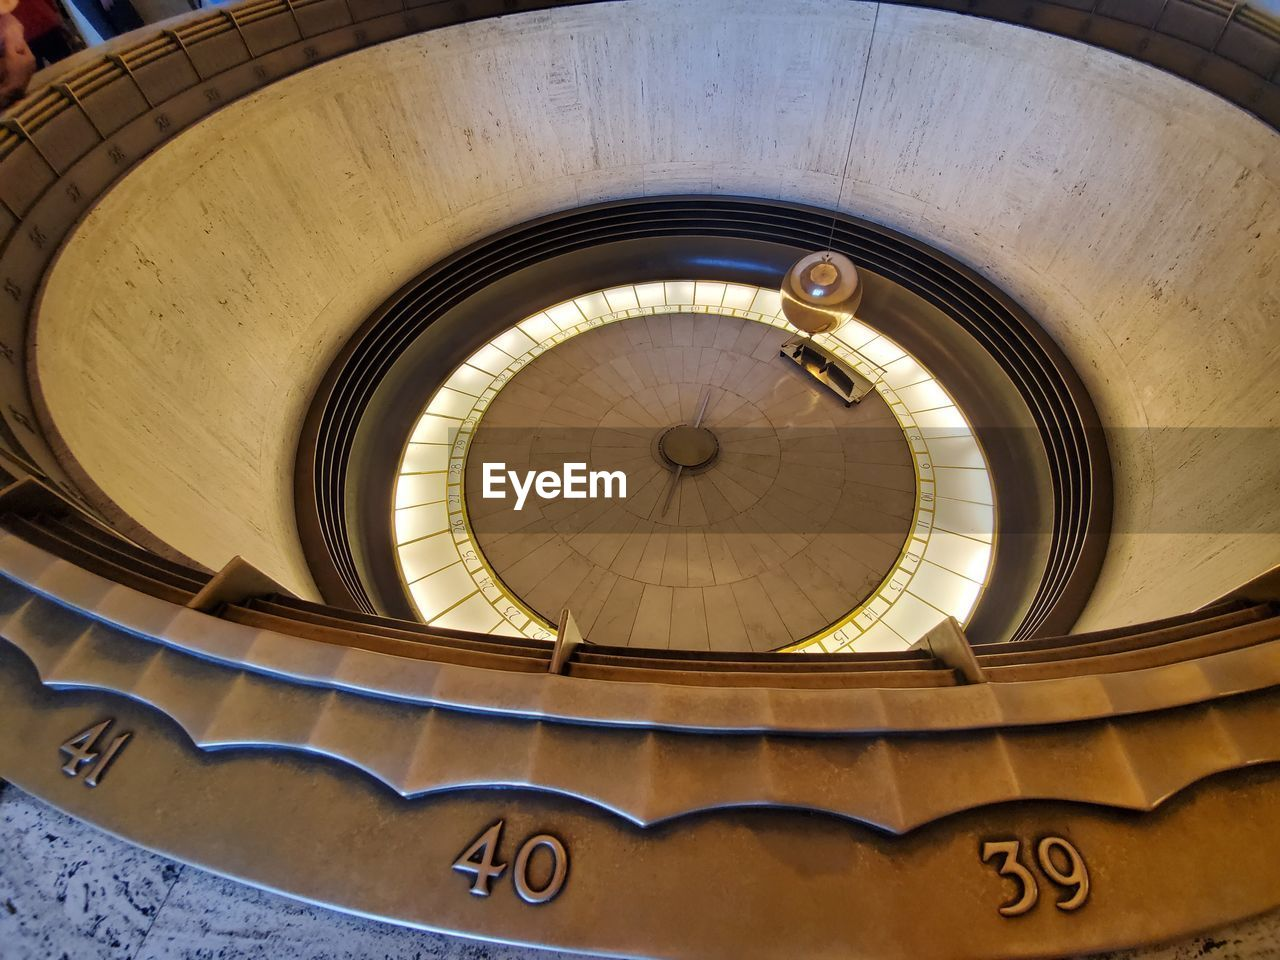 DIRECTLY BELOW VIEW OF SPIRAL STAIRCASE